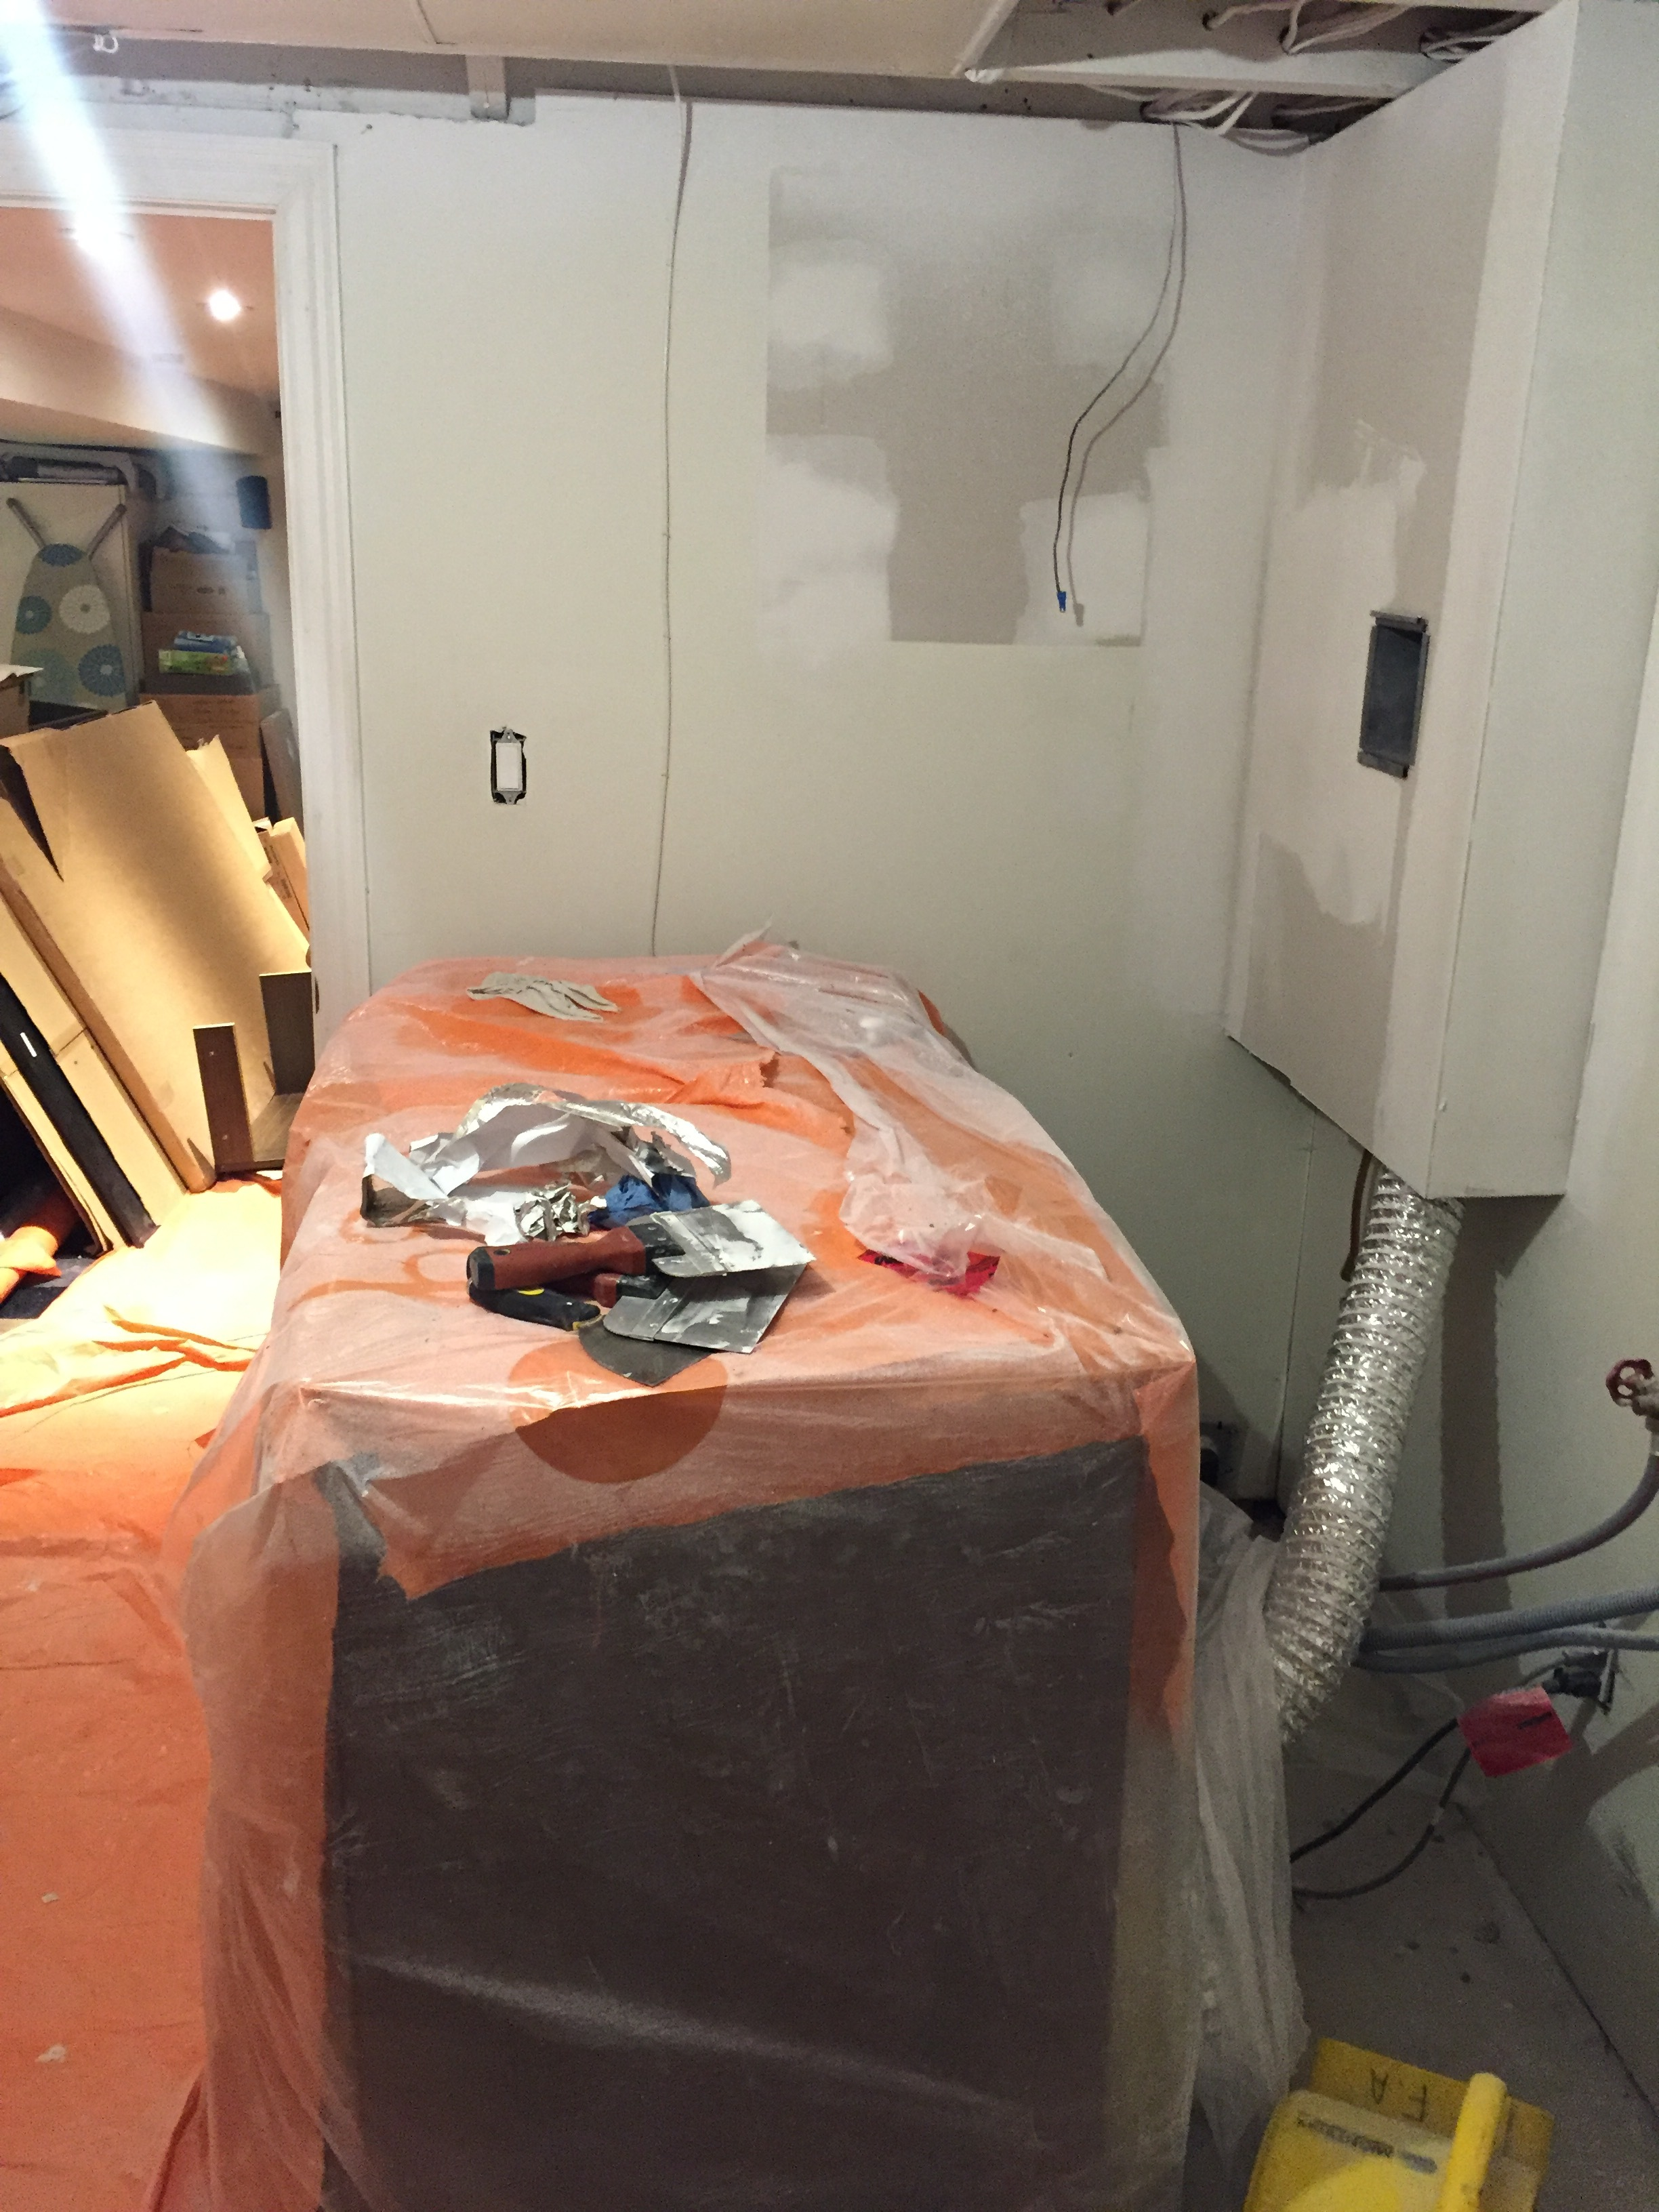 FRAMING & DRYWALL: We also had to build out the wall to conceal the dryer vent. We debated stacking the Washer/Dryer, but keeping them side by side seemed more practical.